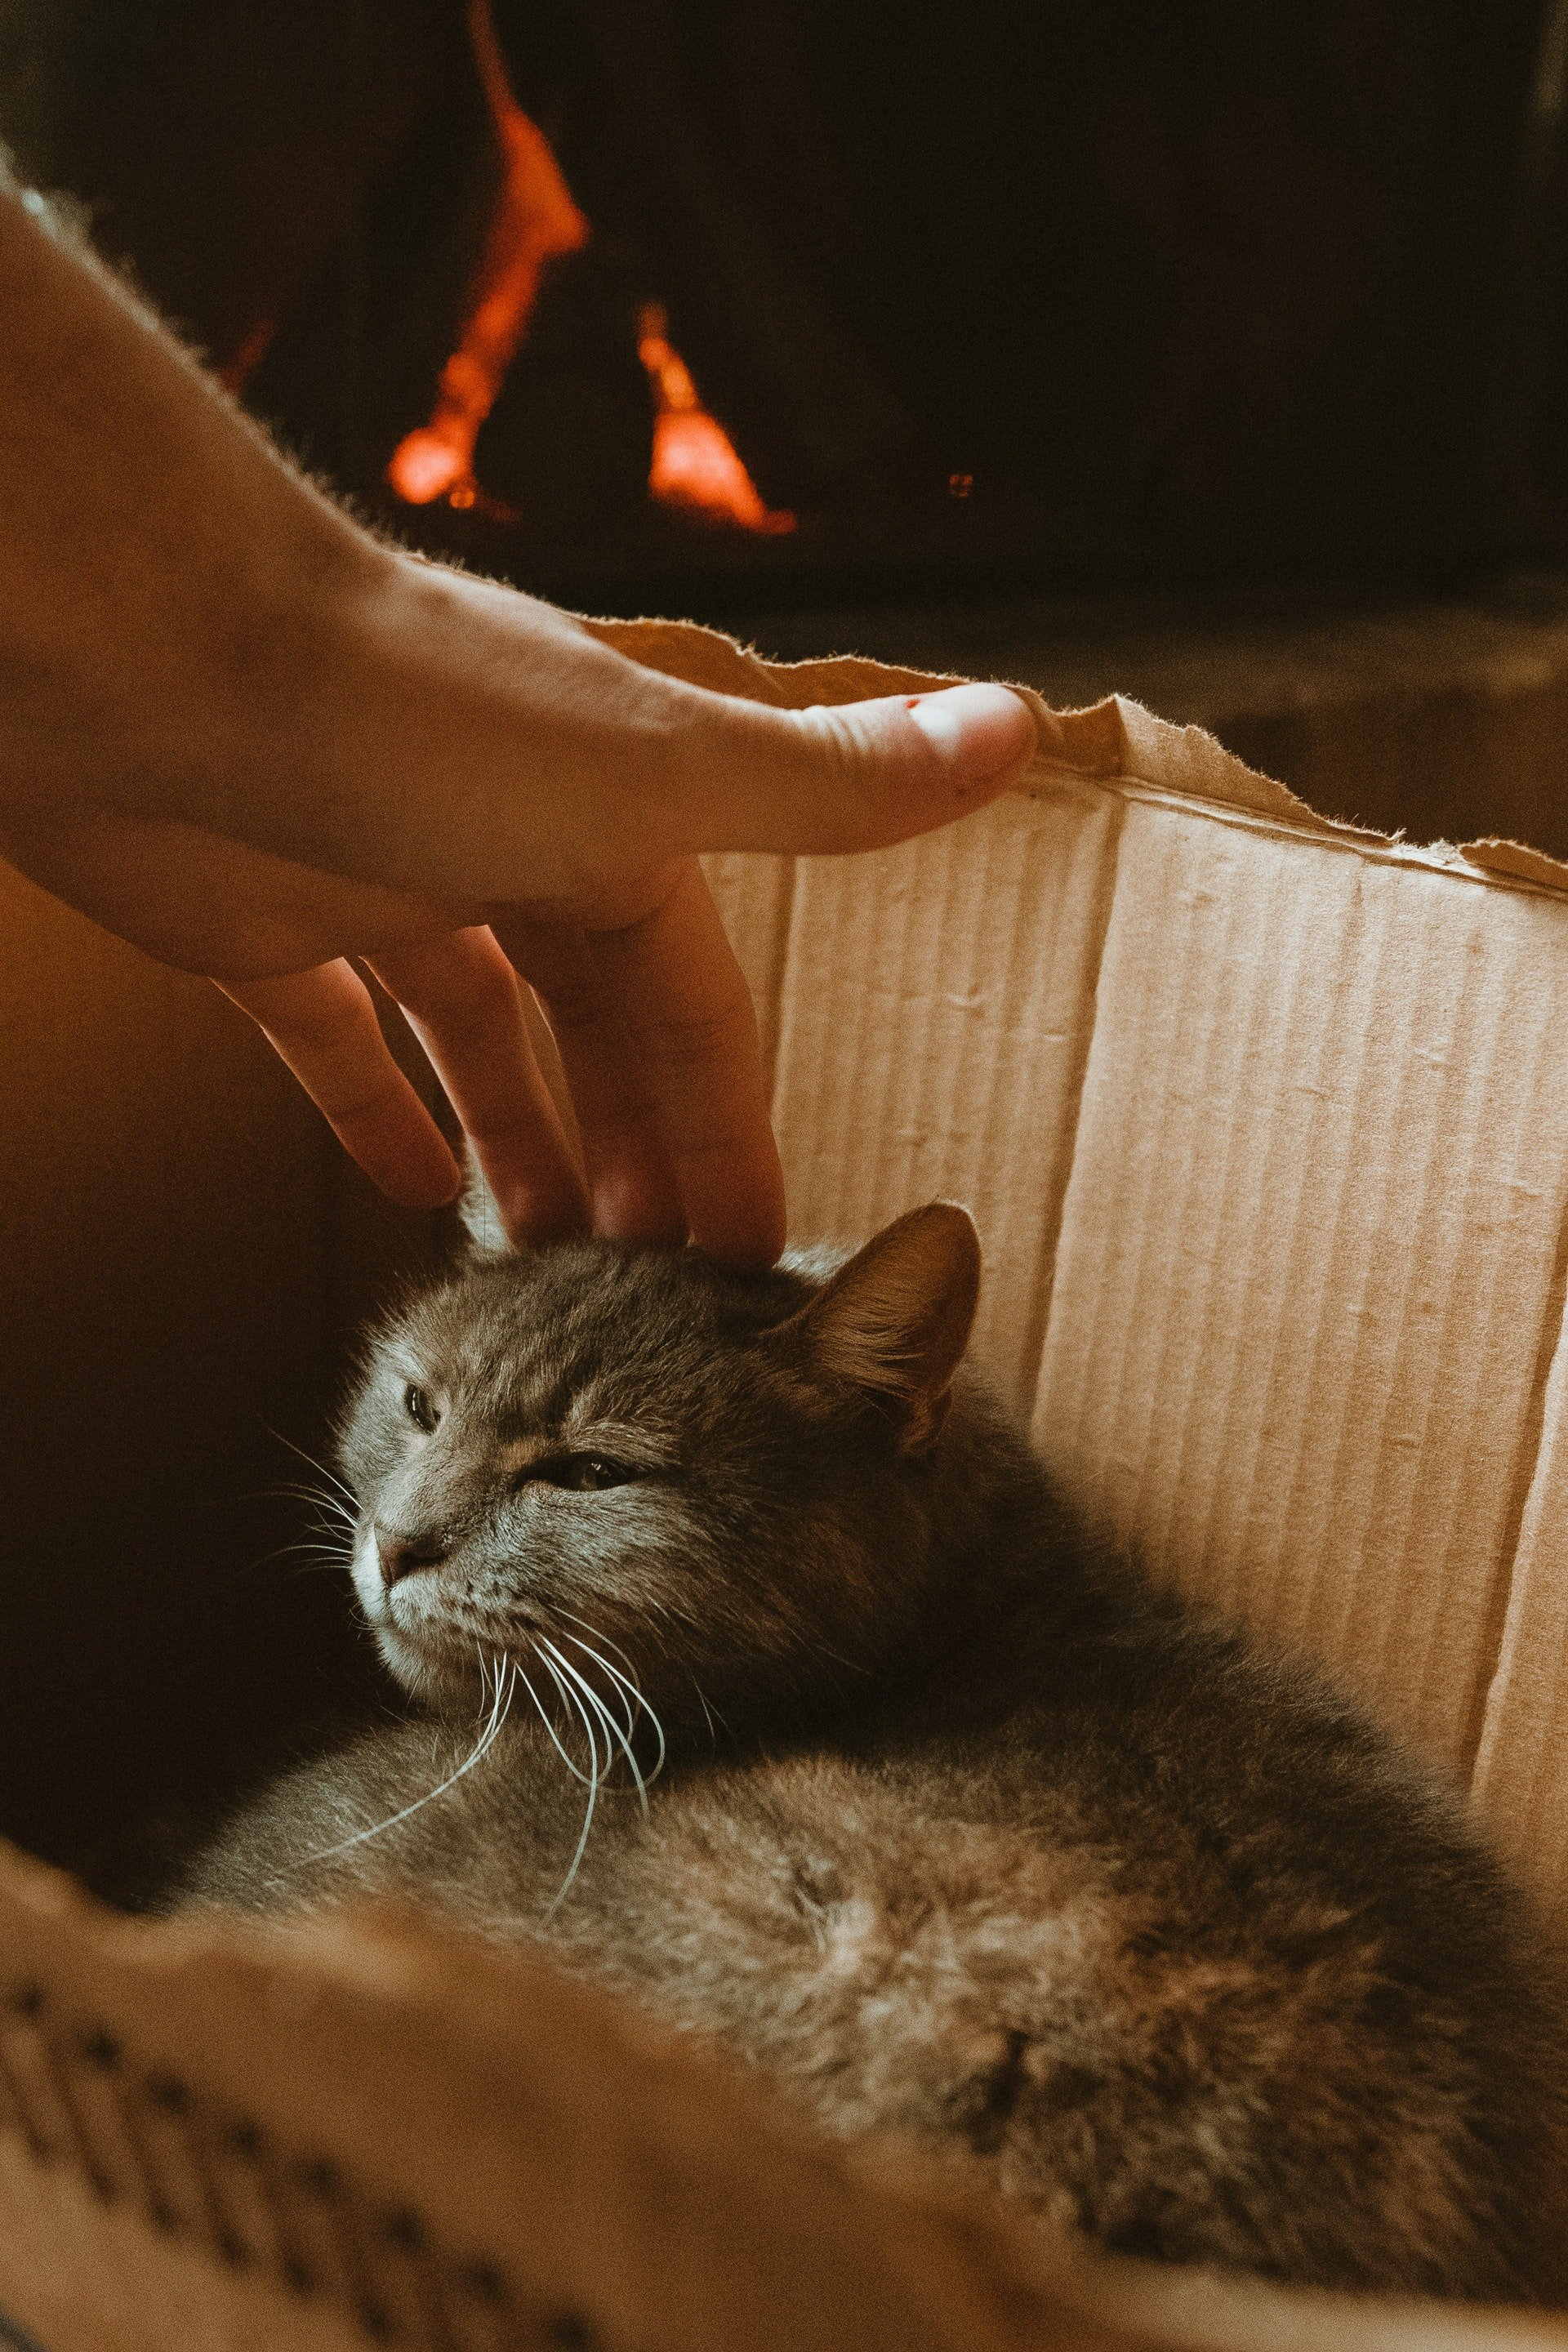 Person's hand petting a cat lying in a box | Photo: Pexels/Agustín Garagorry